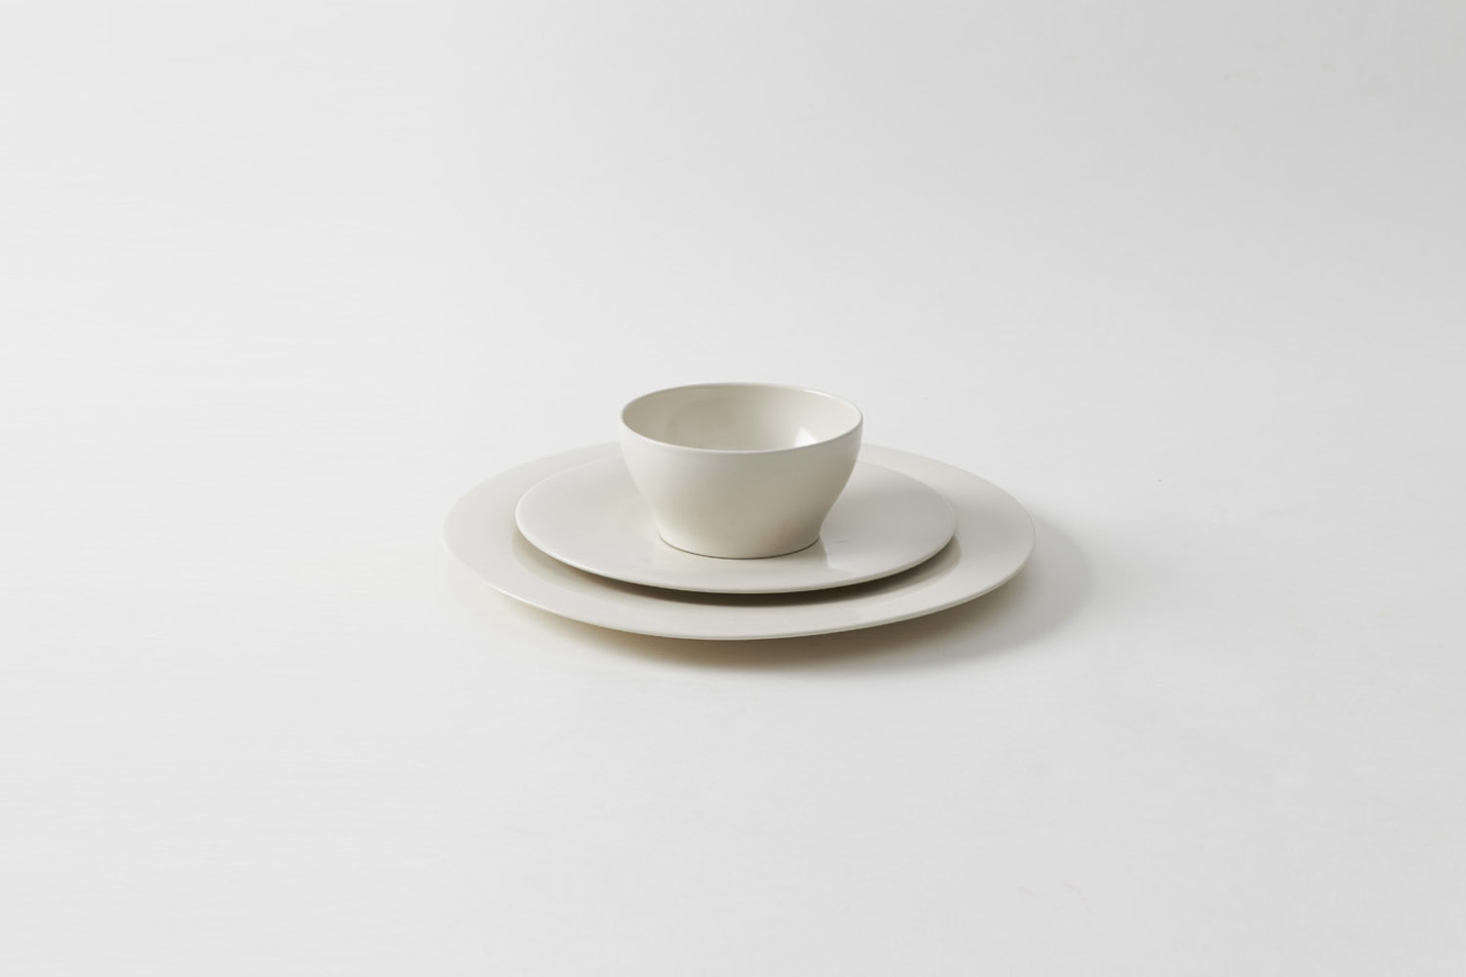 British architect John Pawson designed a set of monastic Ceramic Plates and Bowls for the refectory renovation of the Abbey of Our Lady of Nový Dvur in Bohemia. Plates in two sizes are nearly flat as if levitating above the surface of the table, and bowls are designed to be both simple and humble (small); $60-$180 at March.